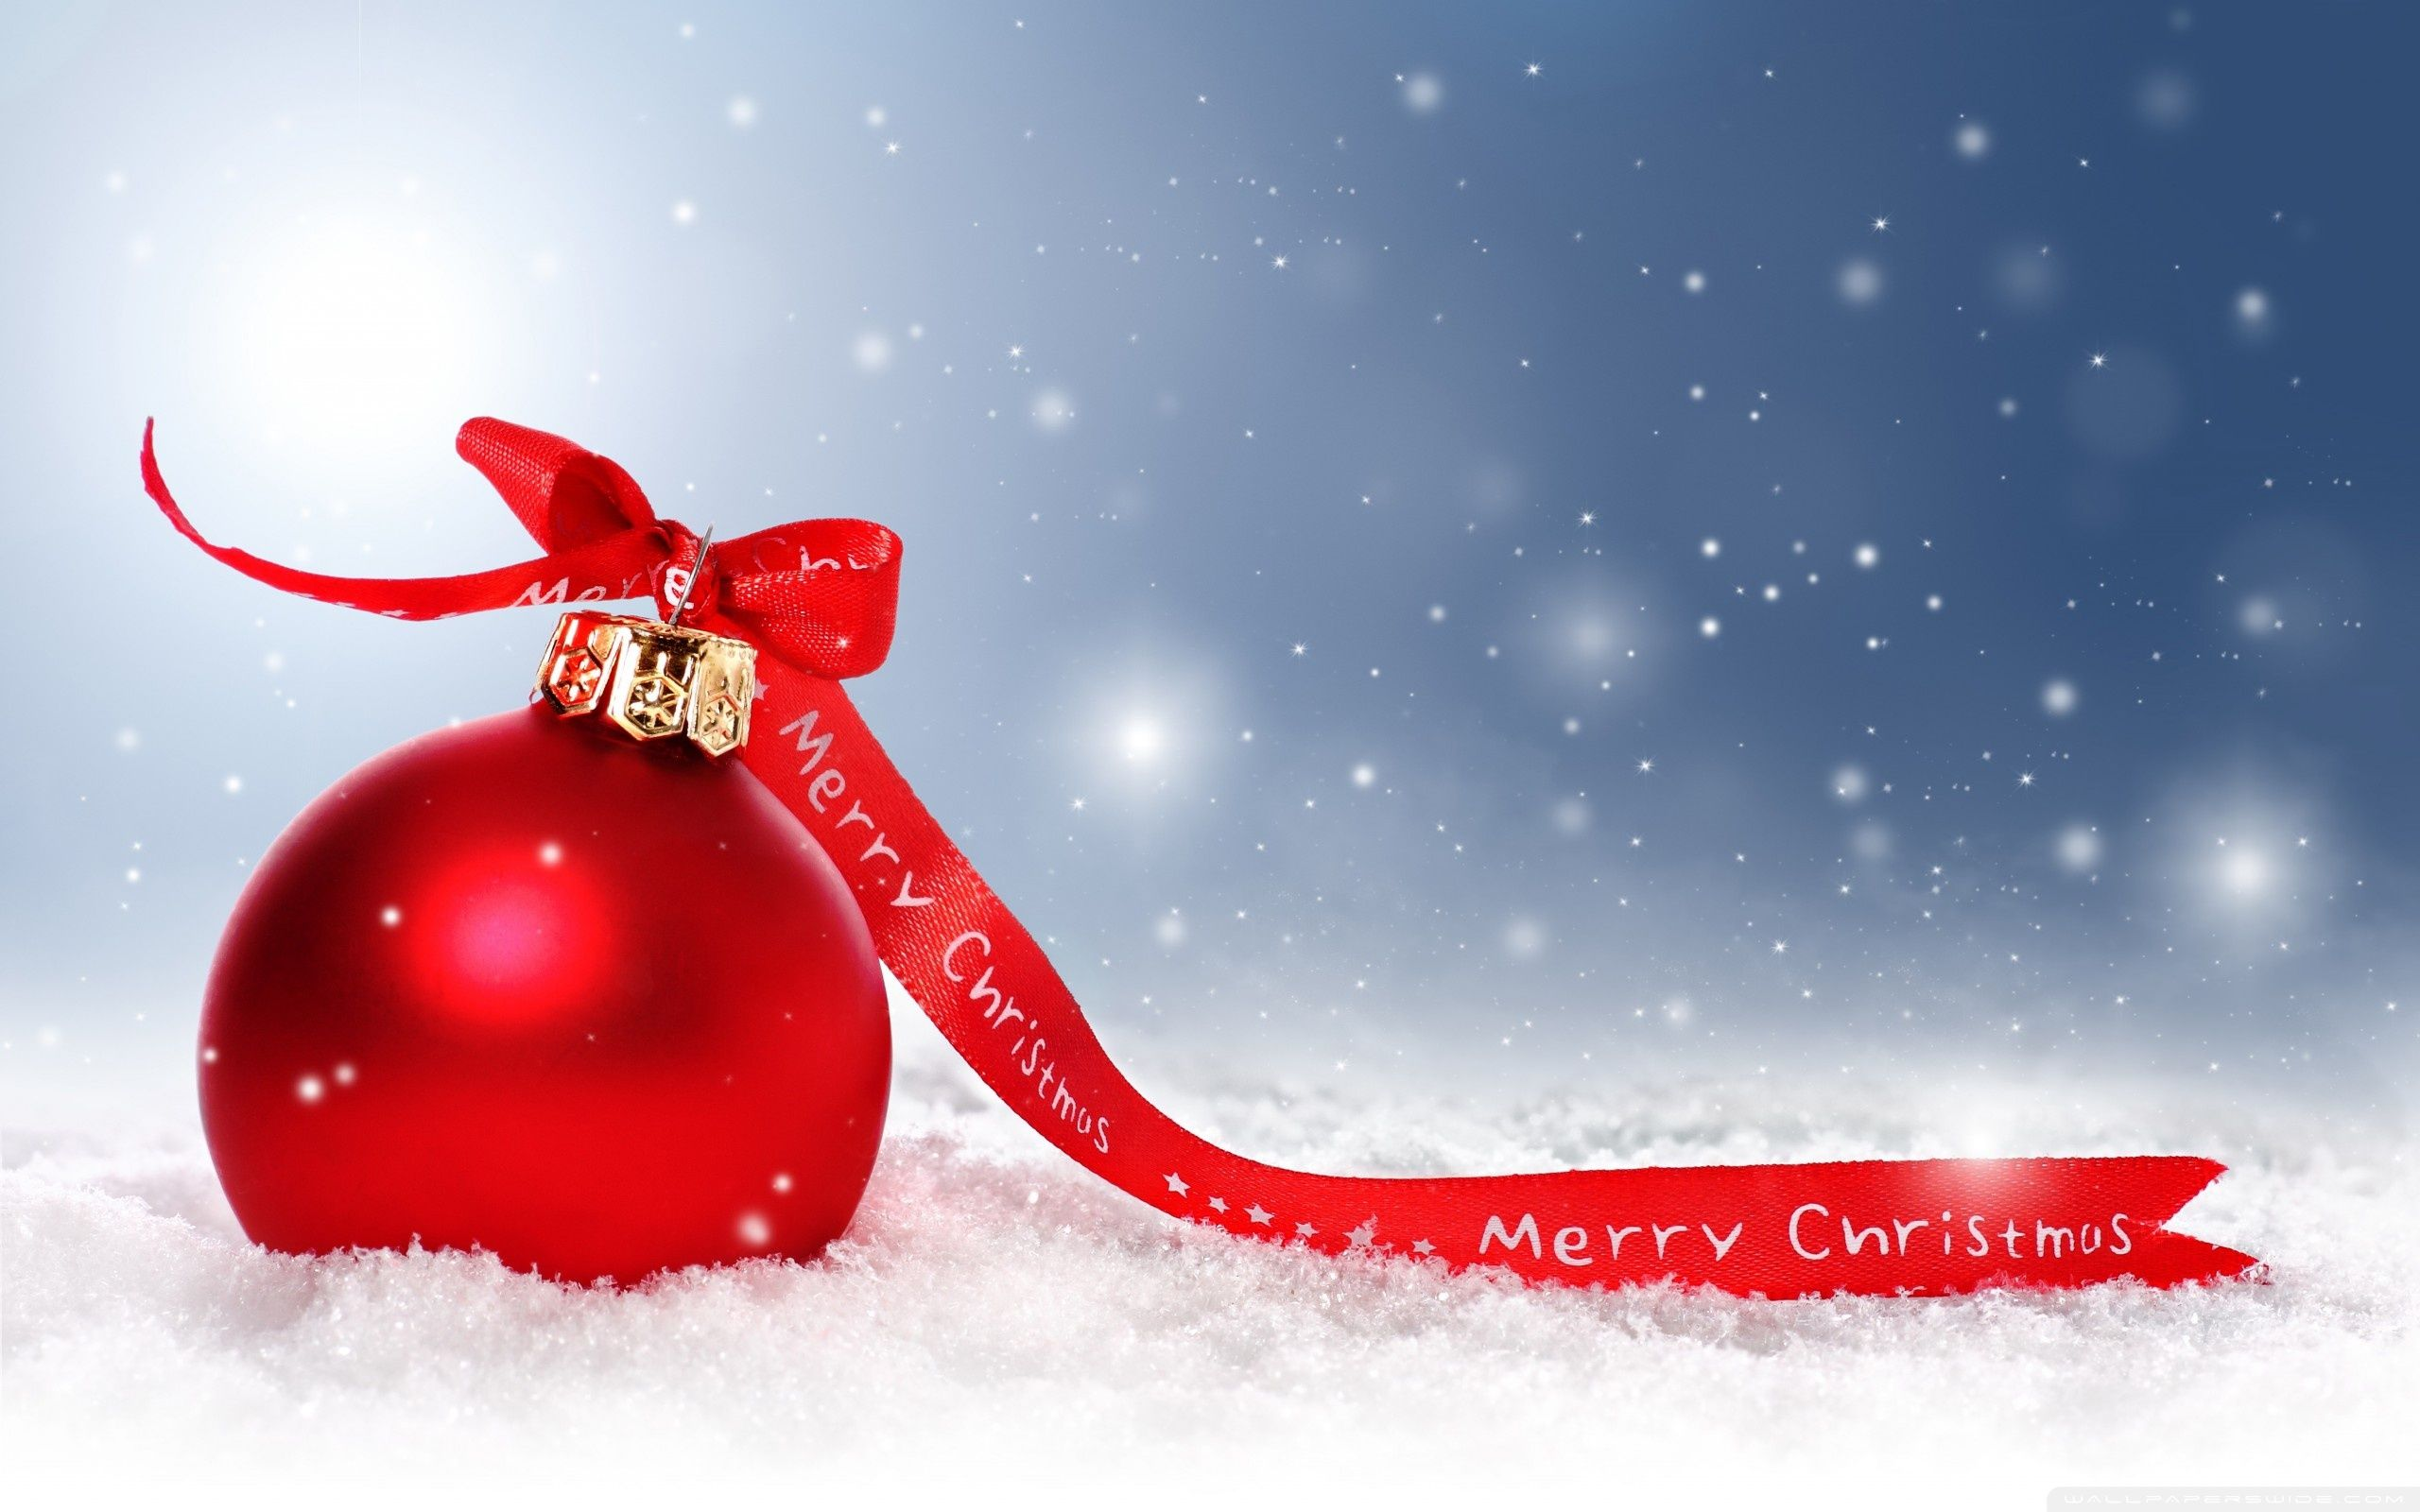 bw furniture wishes you a merry christmas and a happy new year